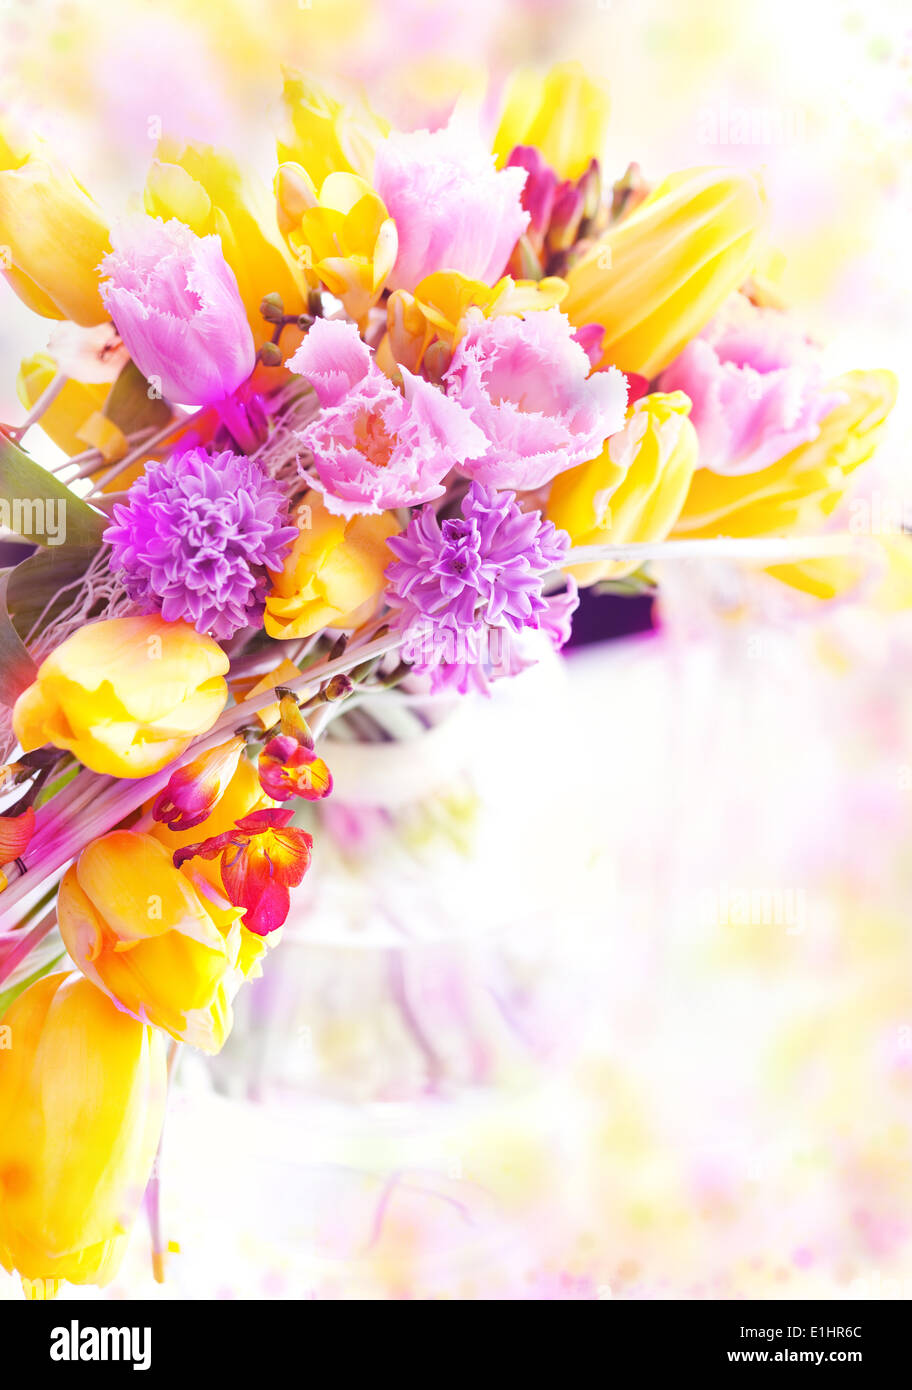 Holiday.  Beautiful spring flowers - yellow tulips as festive background - Stock Image